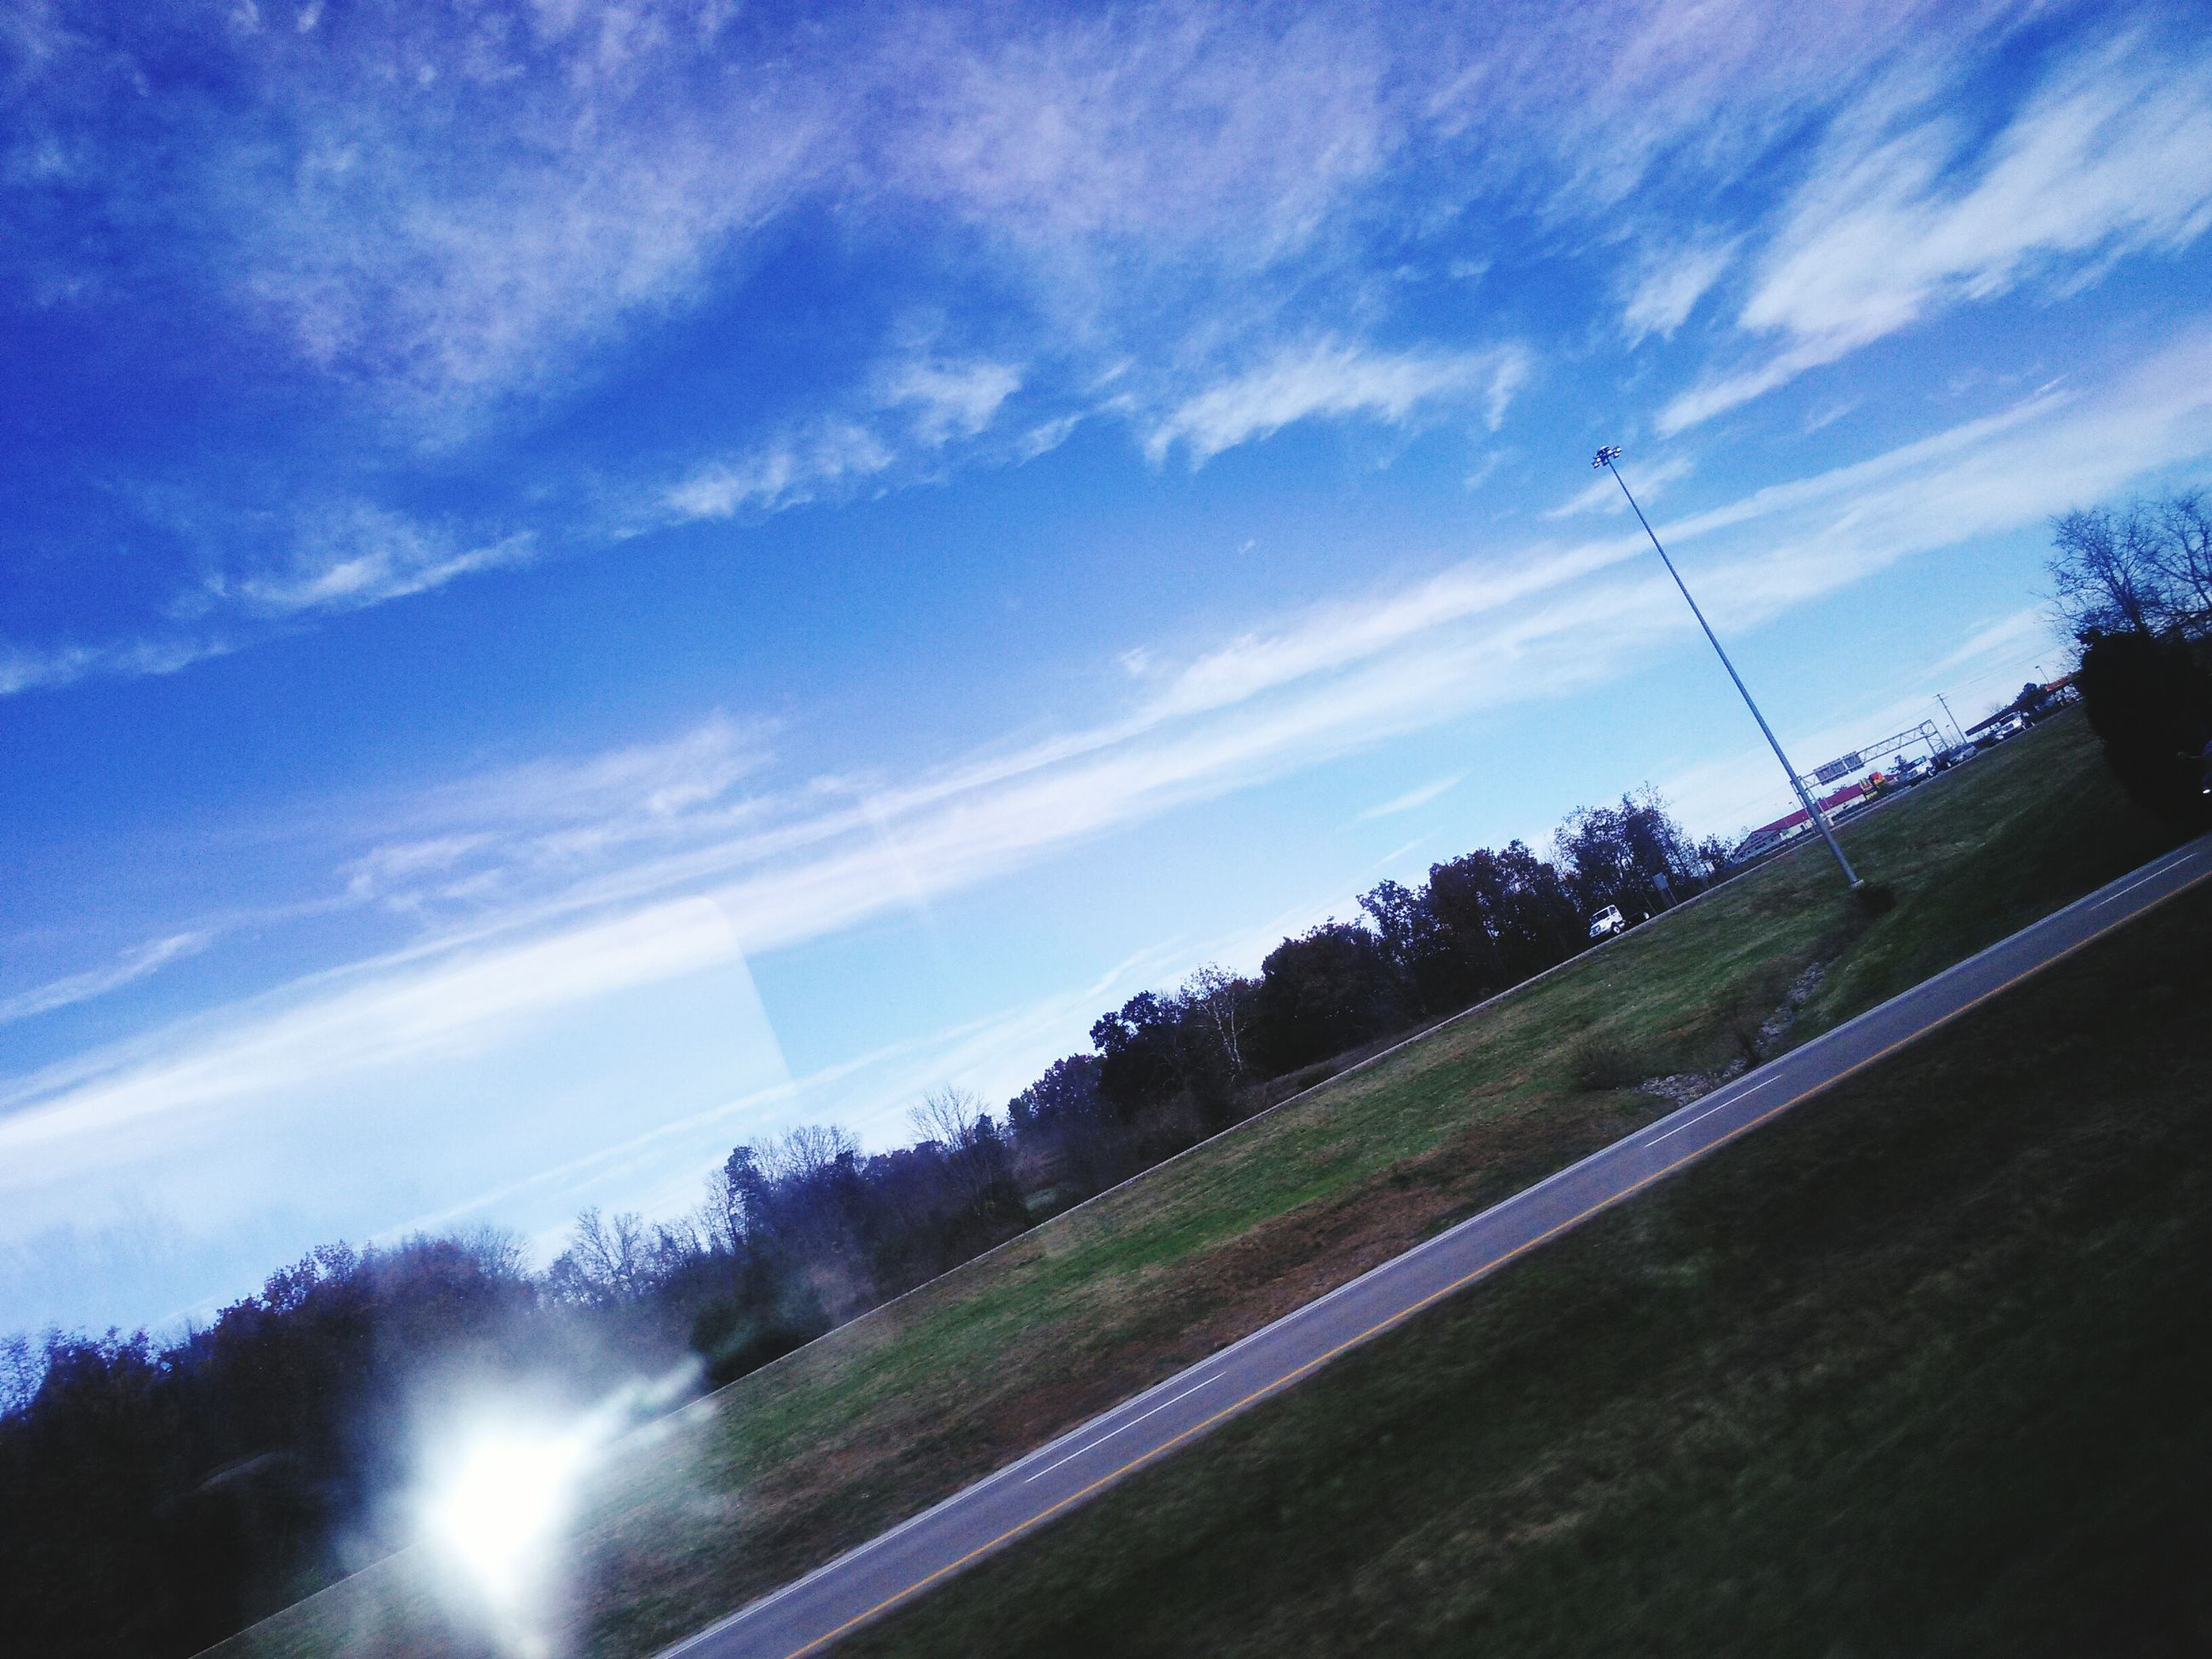 sky, cloud - sky, sunlight, sunbeam, blue, sun, nature, cloud, tree, beauty in nature, tranquility, low angle view, lens flare, silhouette, scenics, tranquil scene, outdoors, no people, landscape, day